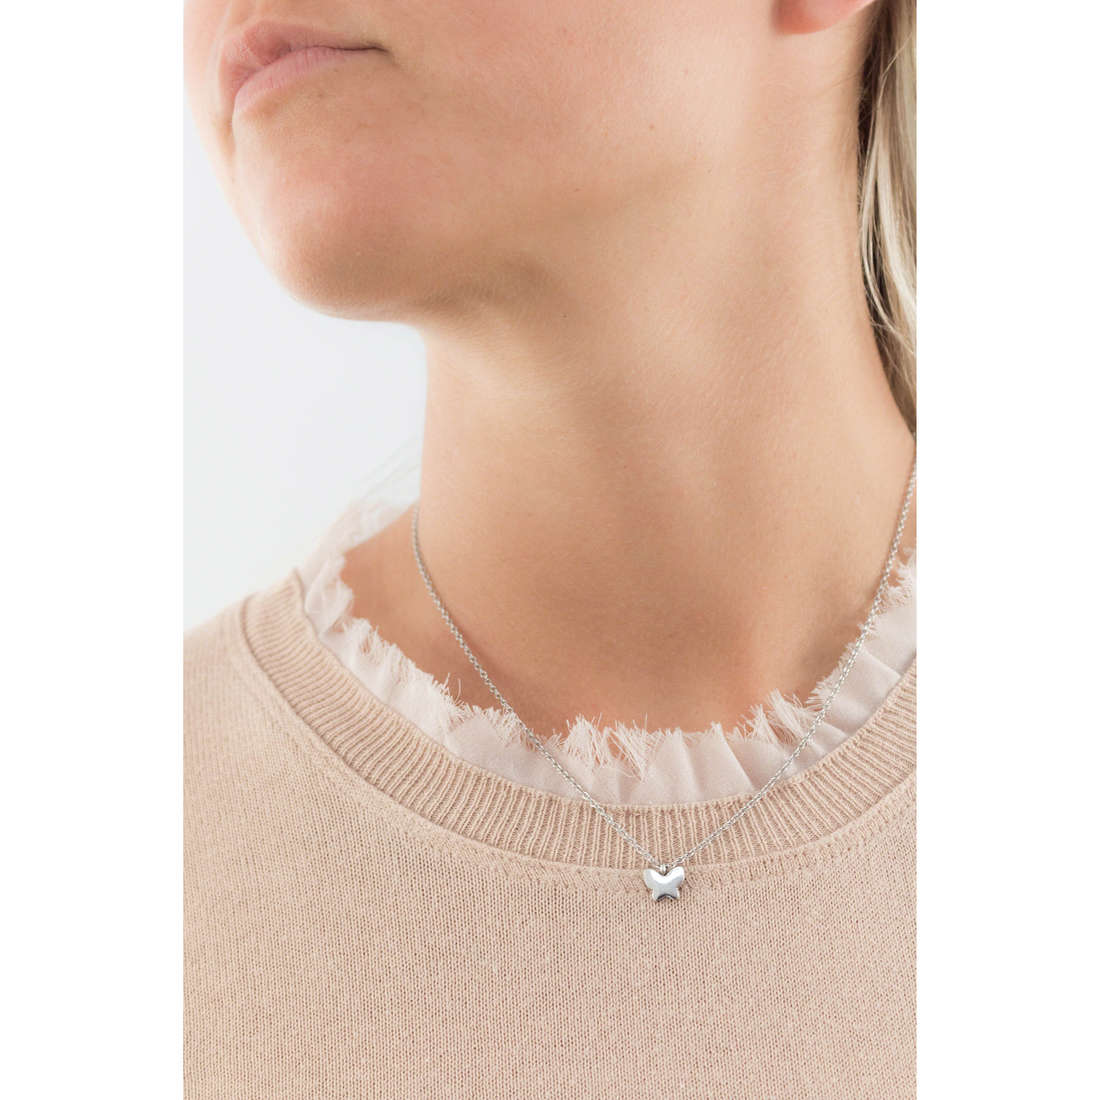 Marlù necklaces Time To woman 18CN033 indosso